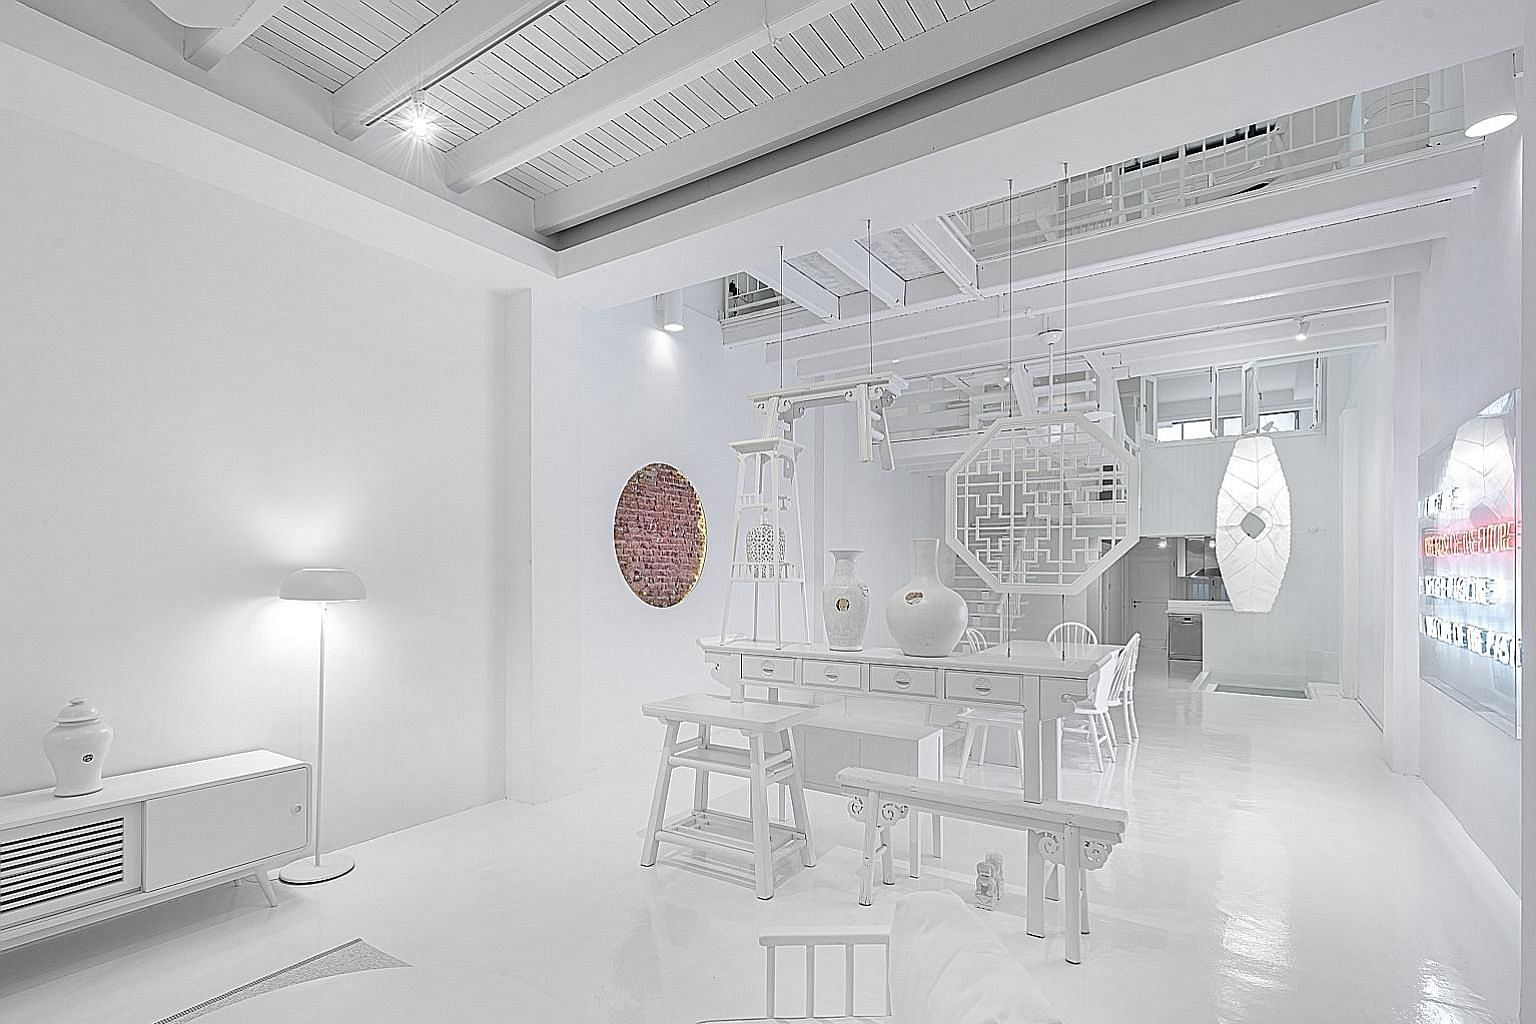 To more intentionally capture and reveal history, Mr Colin Seah of Ministry of Design painted Figment's restored shophouse in Blair Road almost entirely white. He left playful peek-a-boo vignettes on decor items such as vintage ceramic plates hung on the